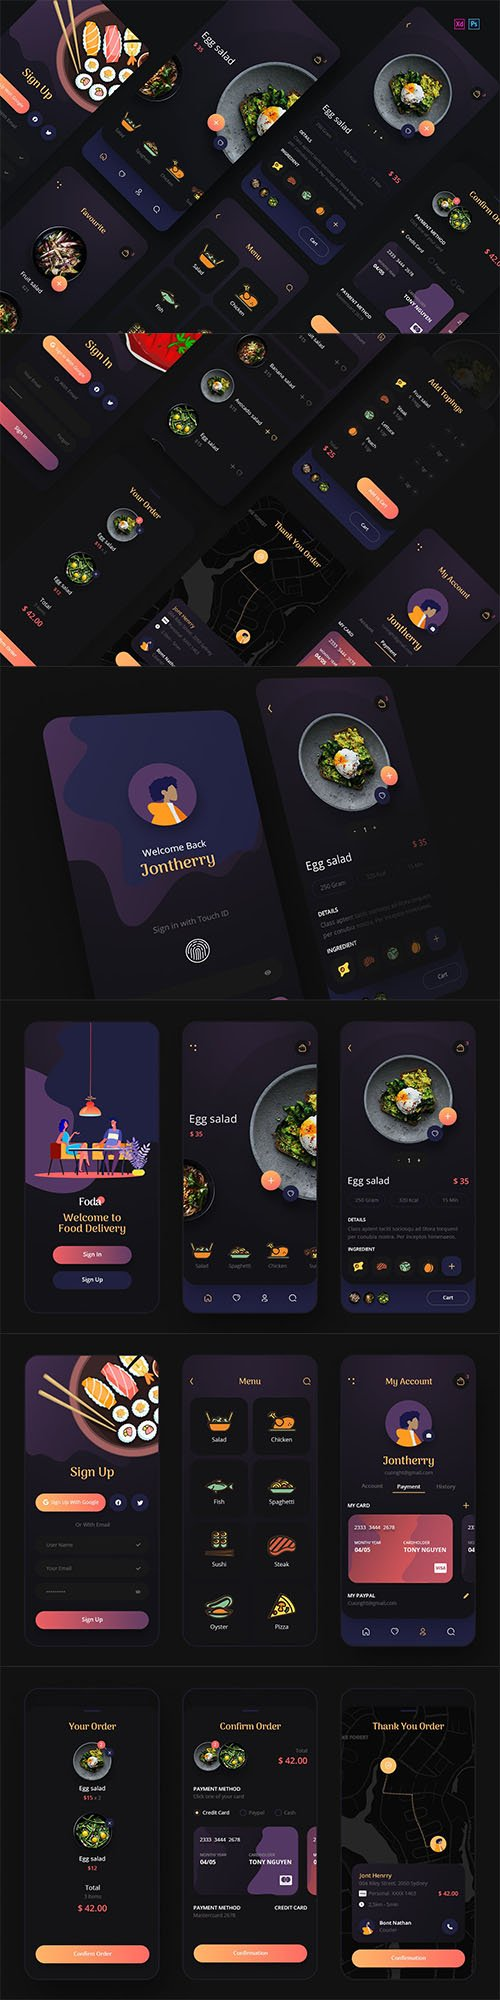 Foda - Food Delivery Mobile App UX, UI Template